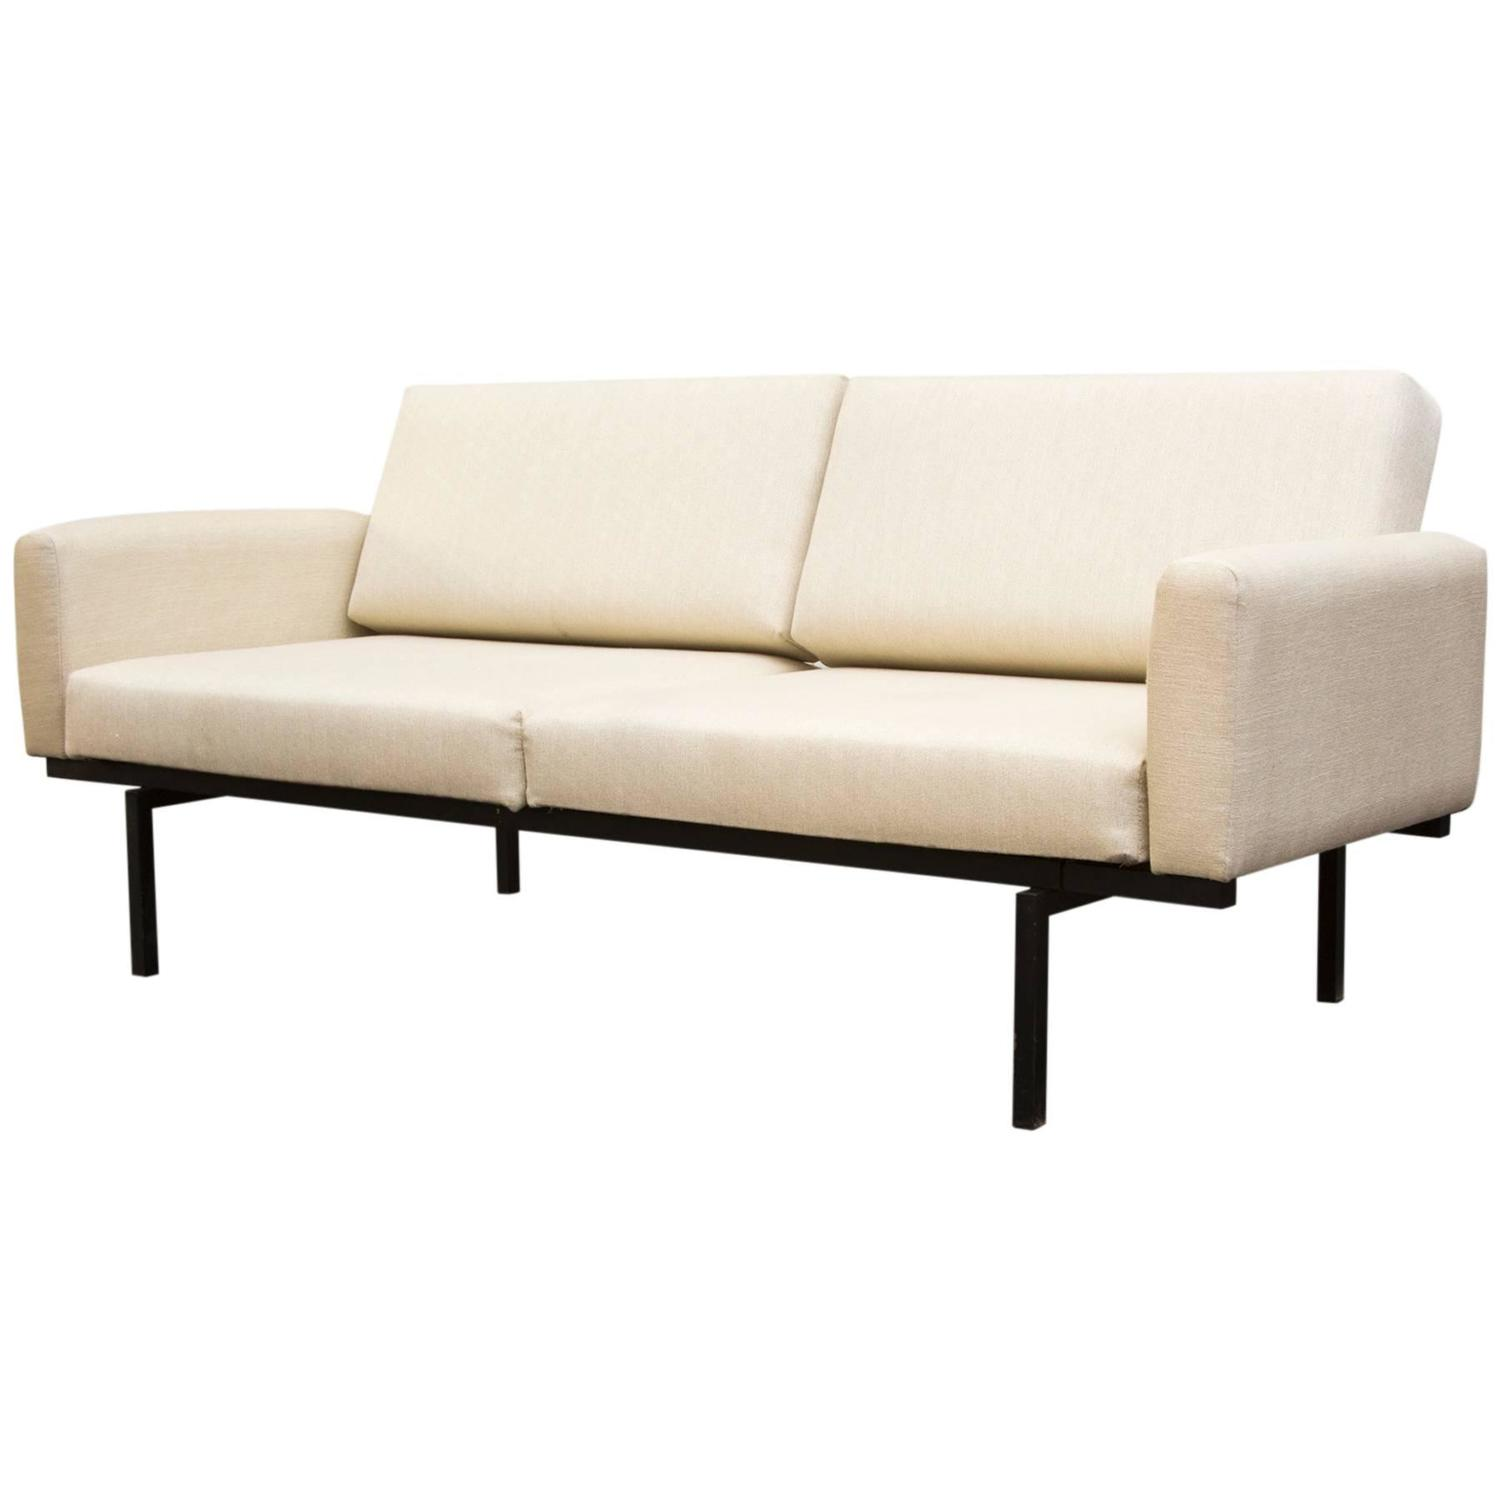 Coen de vries sofa daybed for sale at 1stdibs for Cleopatra sofa bed